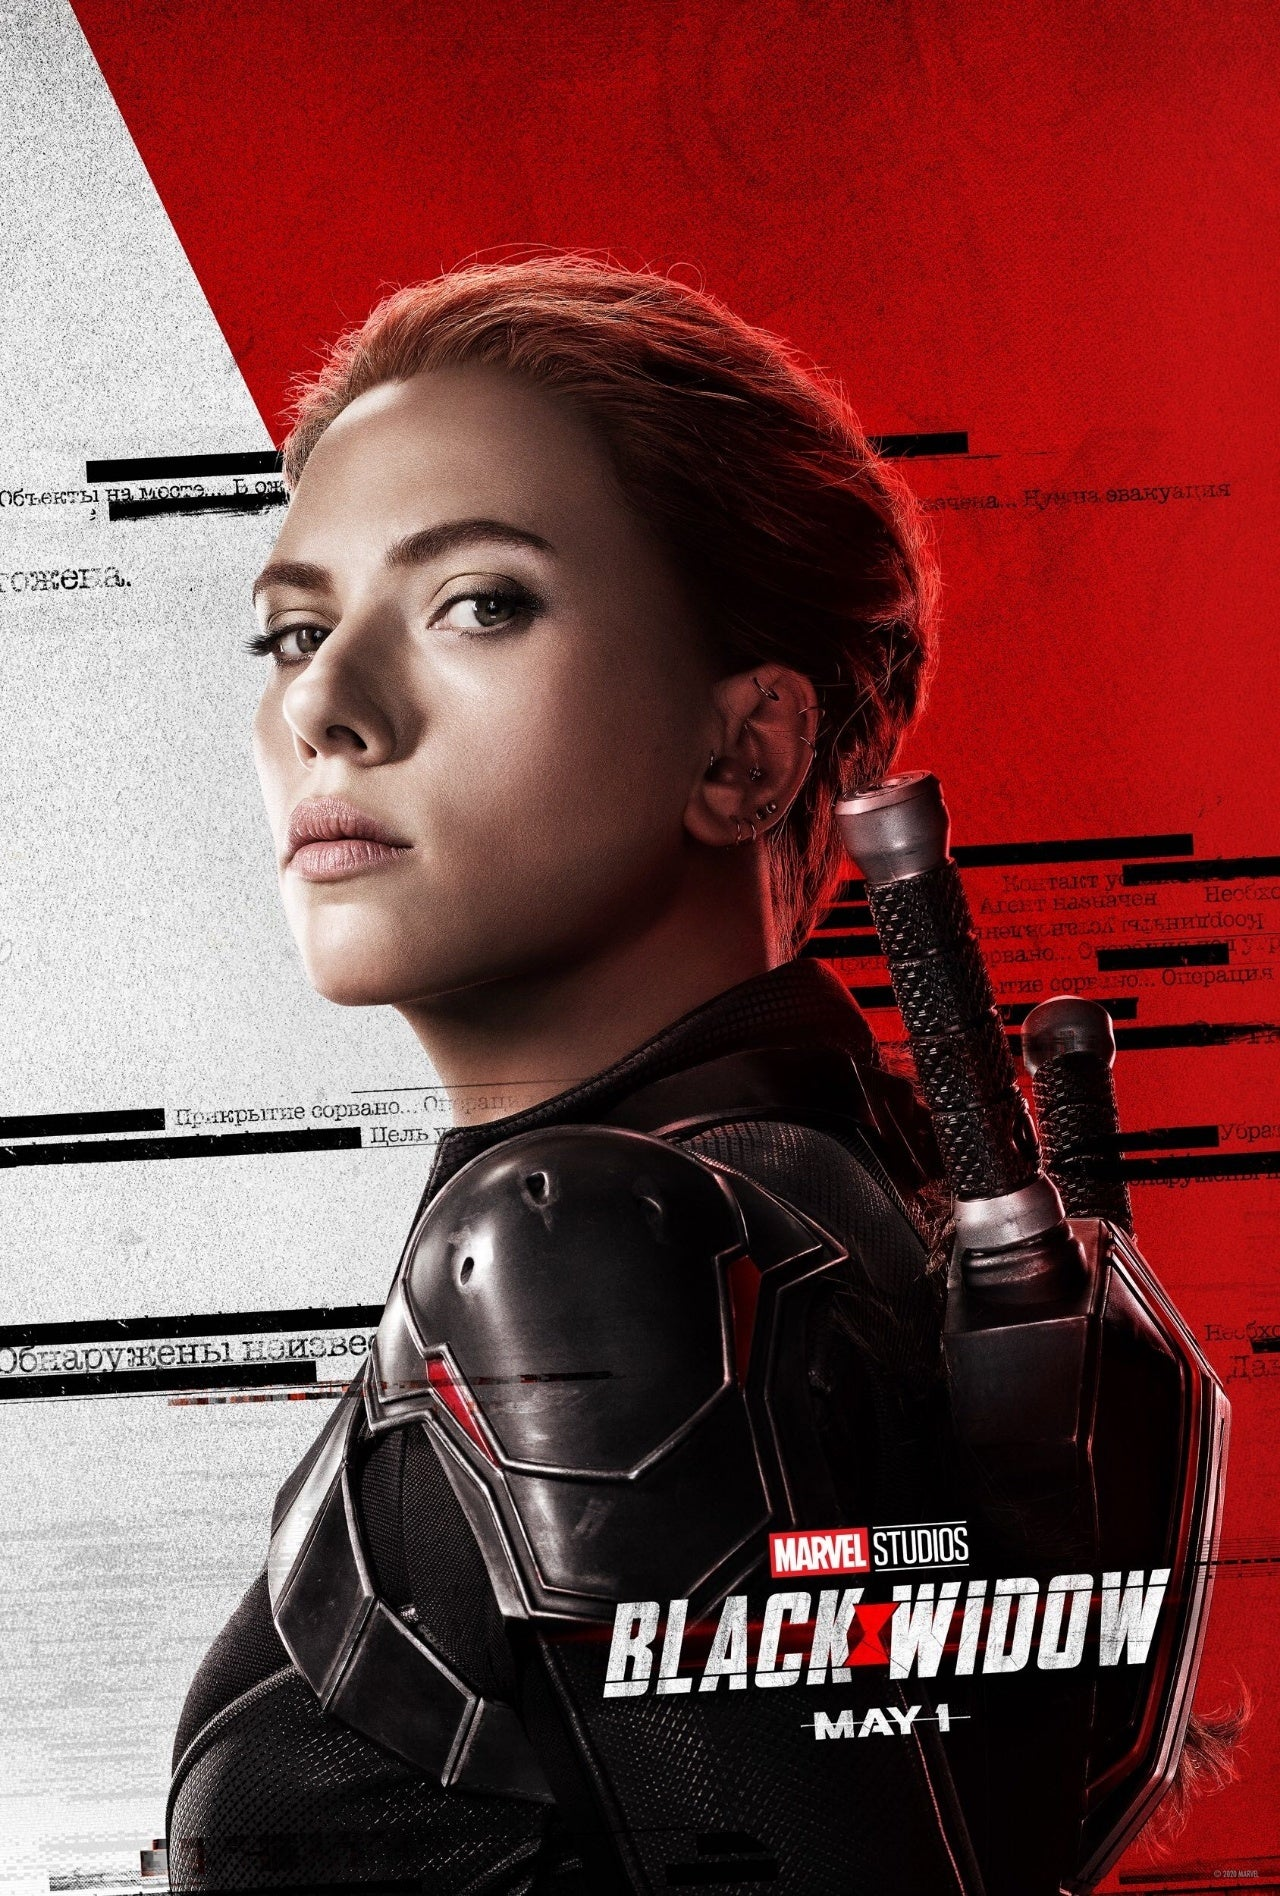 black widow character poster